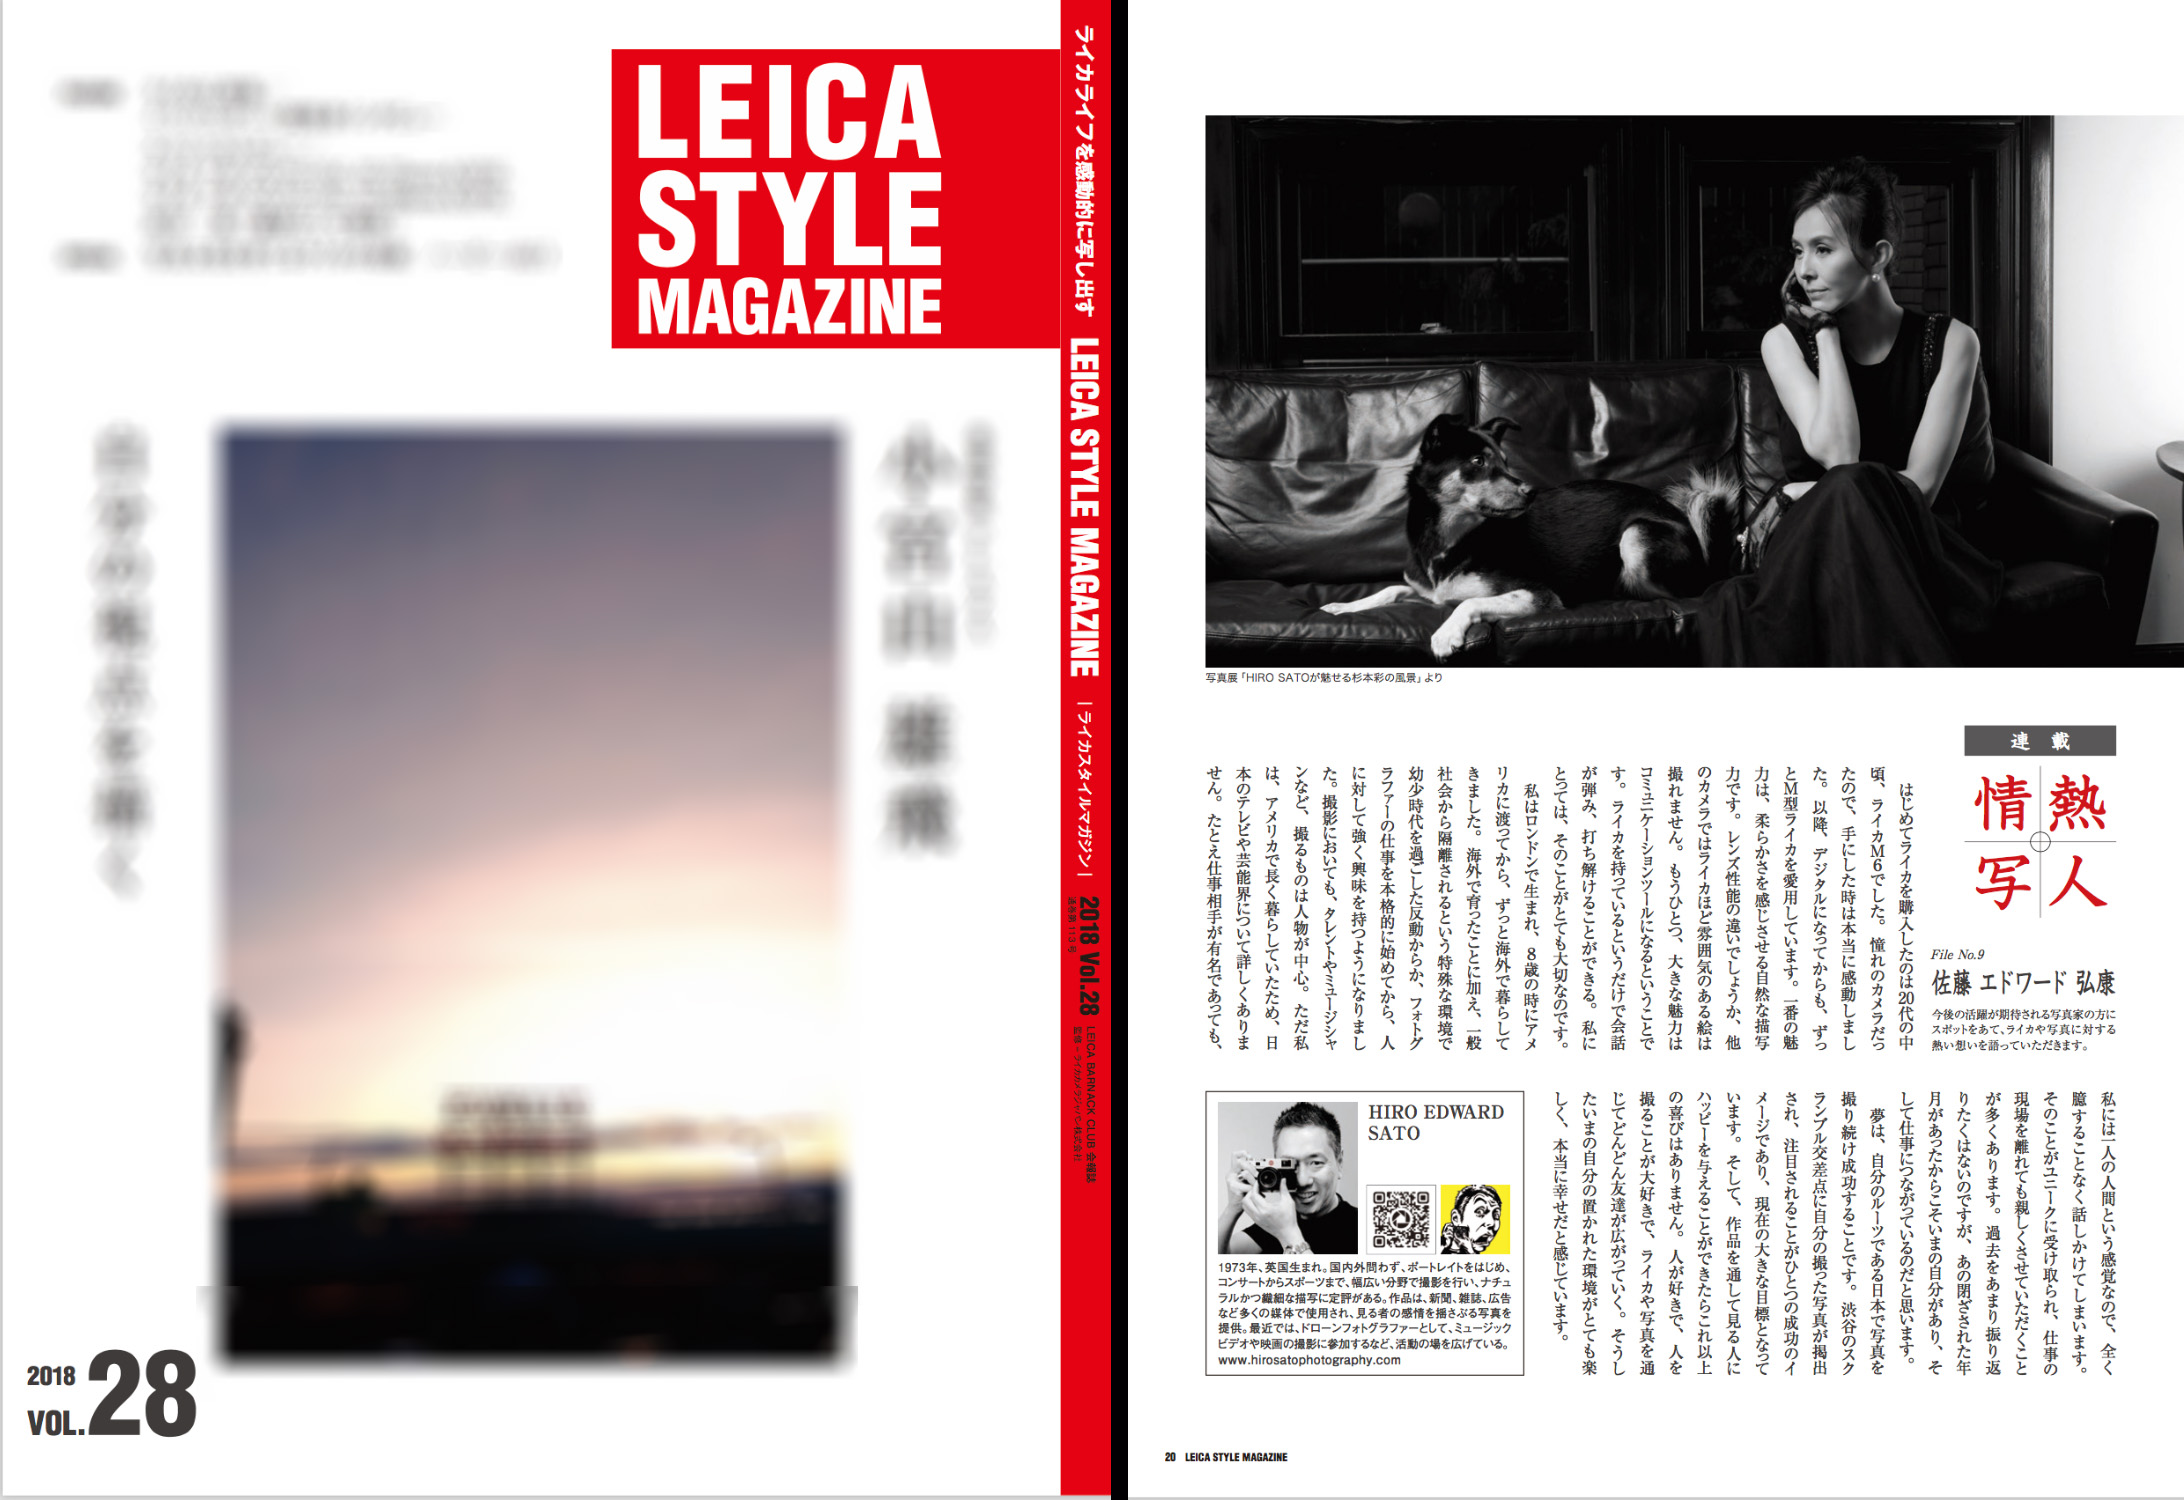 Interview for Leica Style Magazine Featured on 2018 issue of